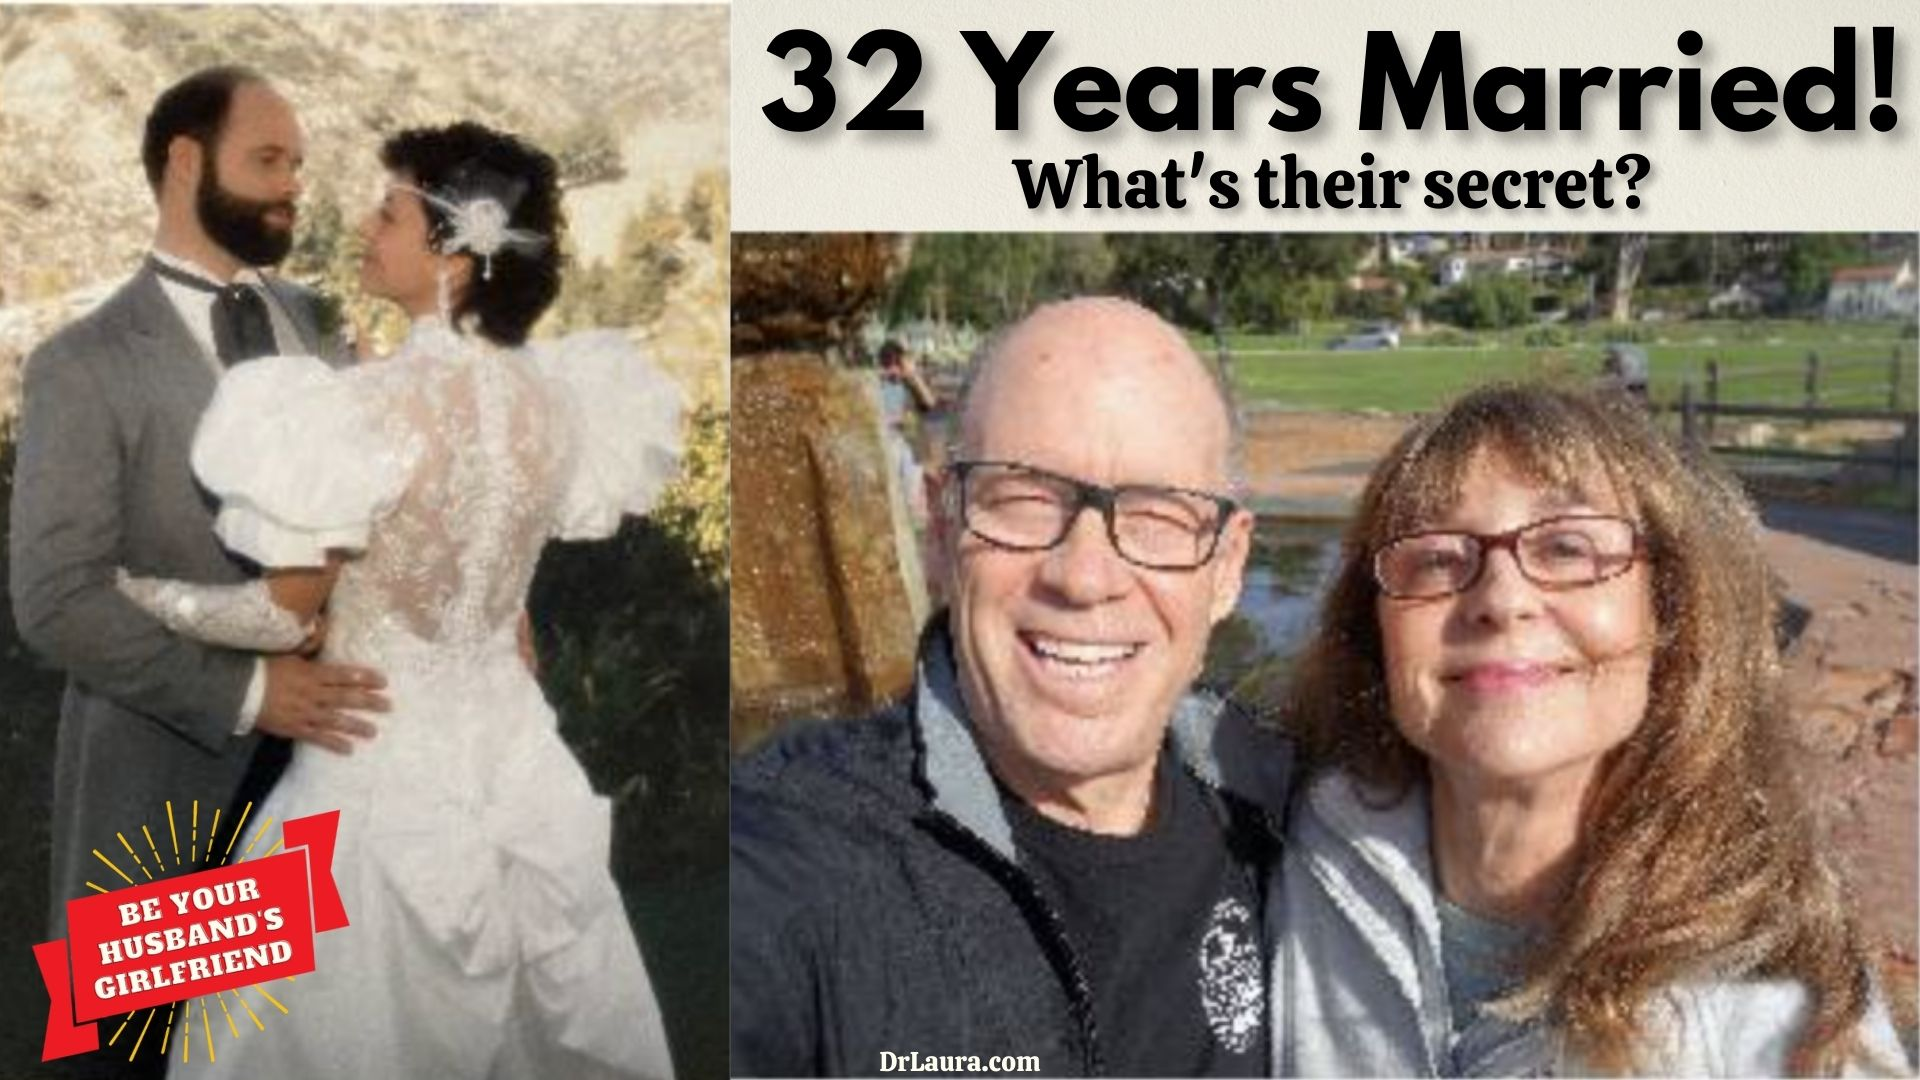 Email of the Day: How Our Good Marriage Got Even Better